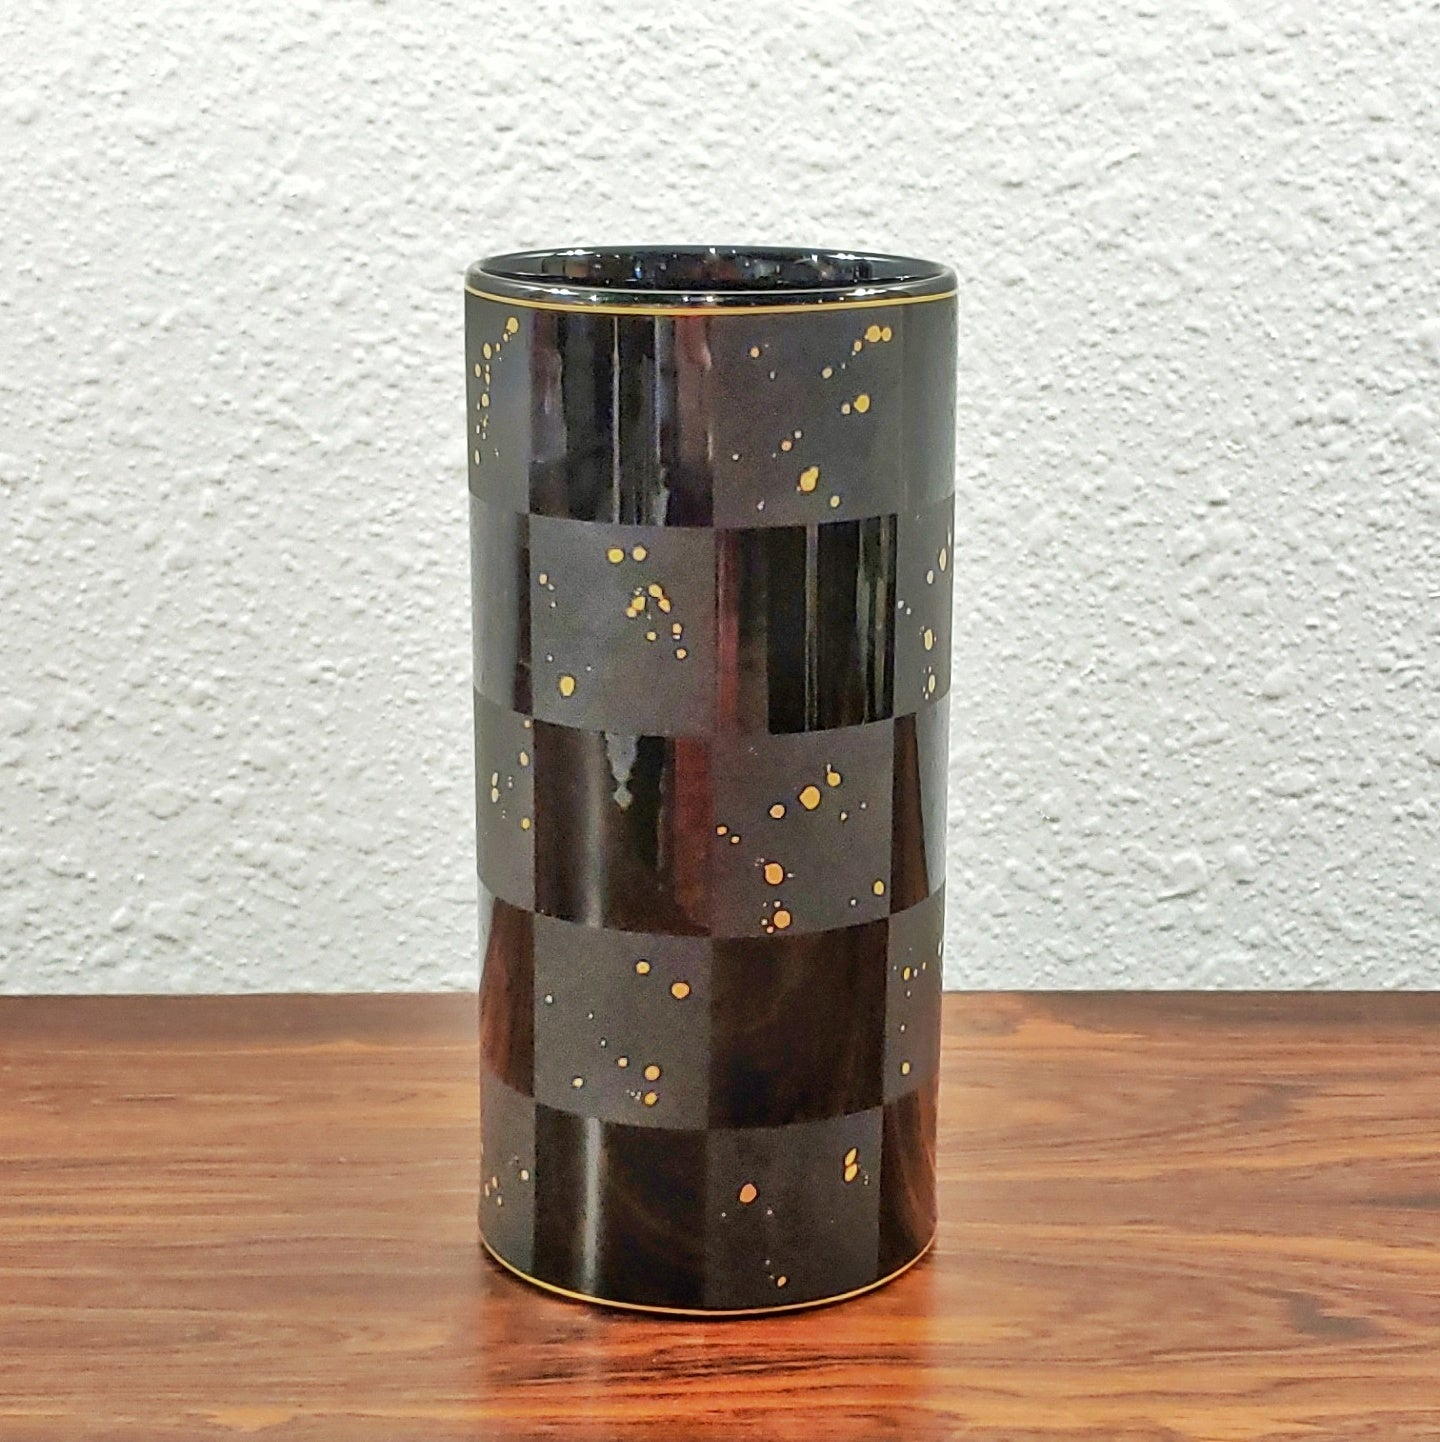 FROGEN YANG AND ELSA FISCHER-TREYDEN 'CARRÉ D'OR' PORCELAIN VASE FOR ROSENTHAL